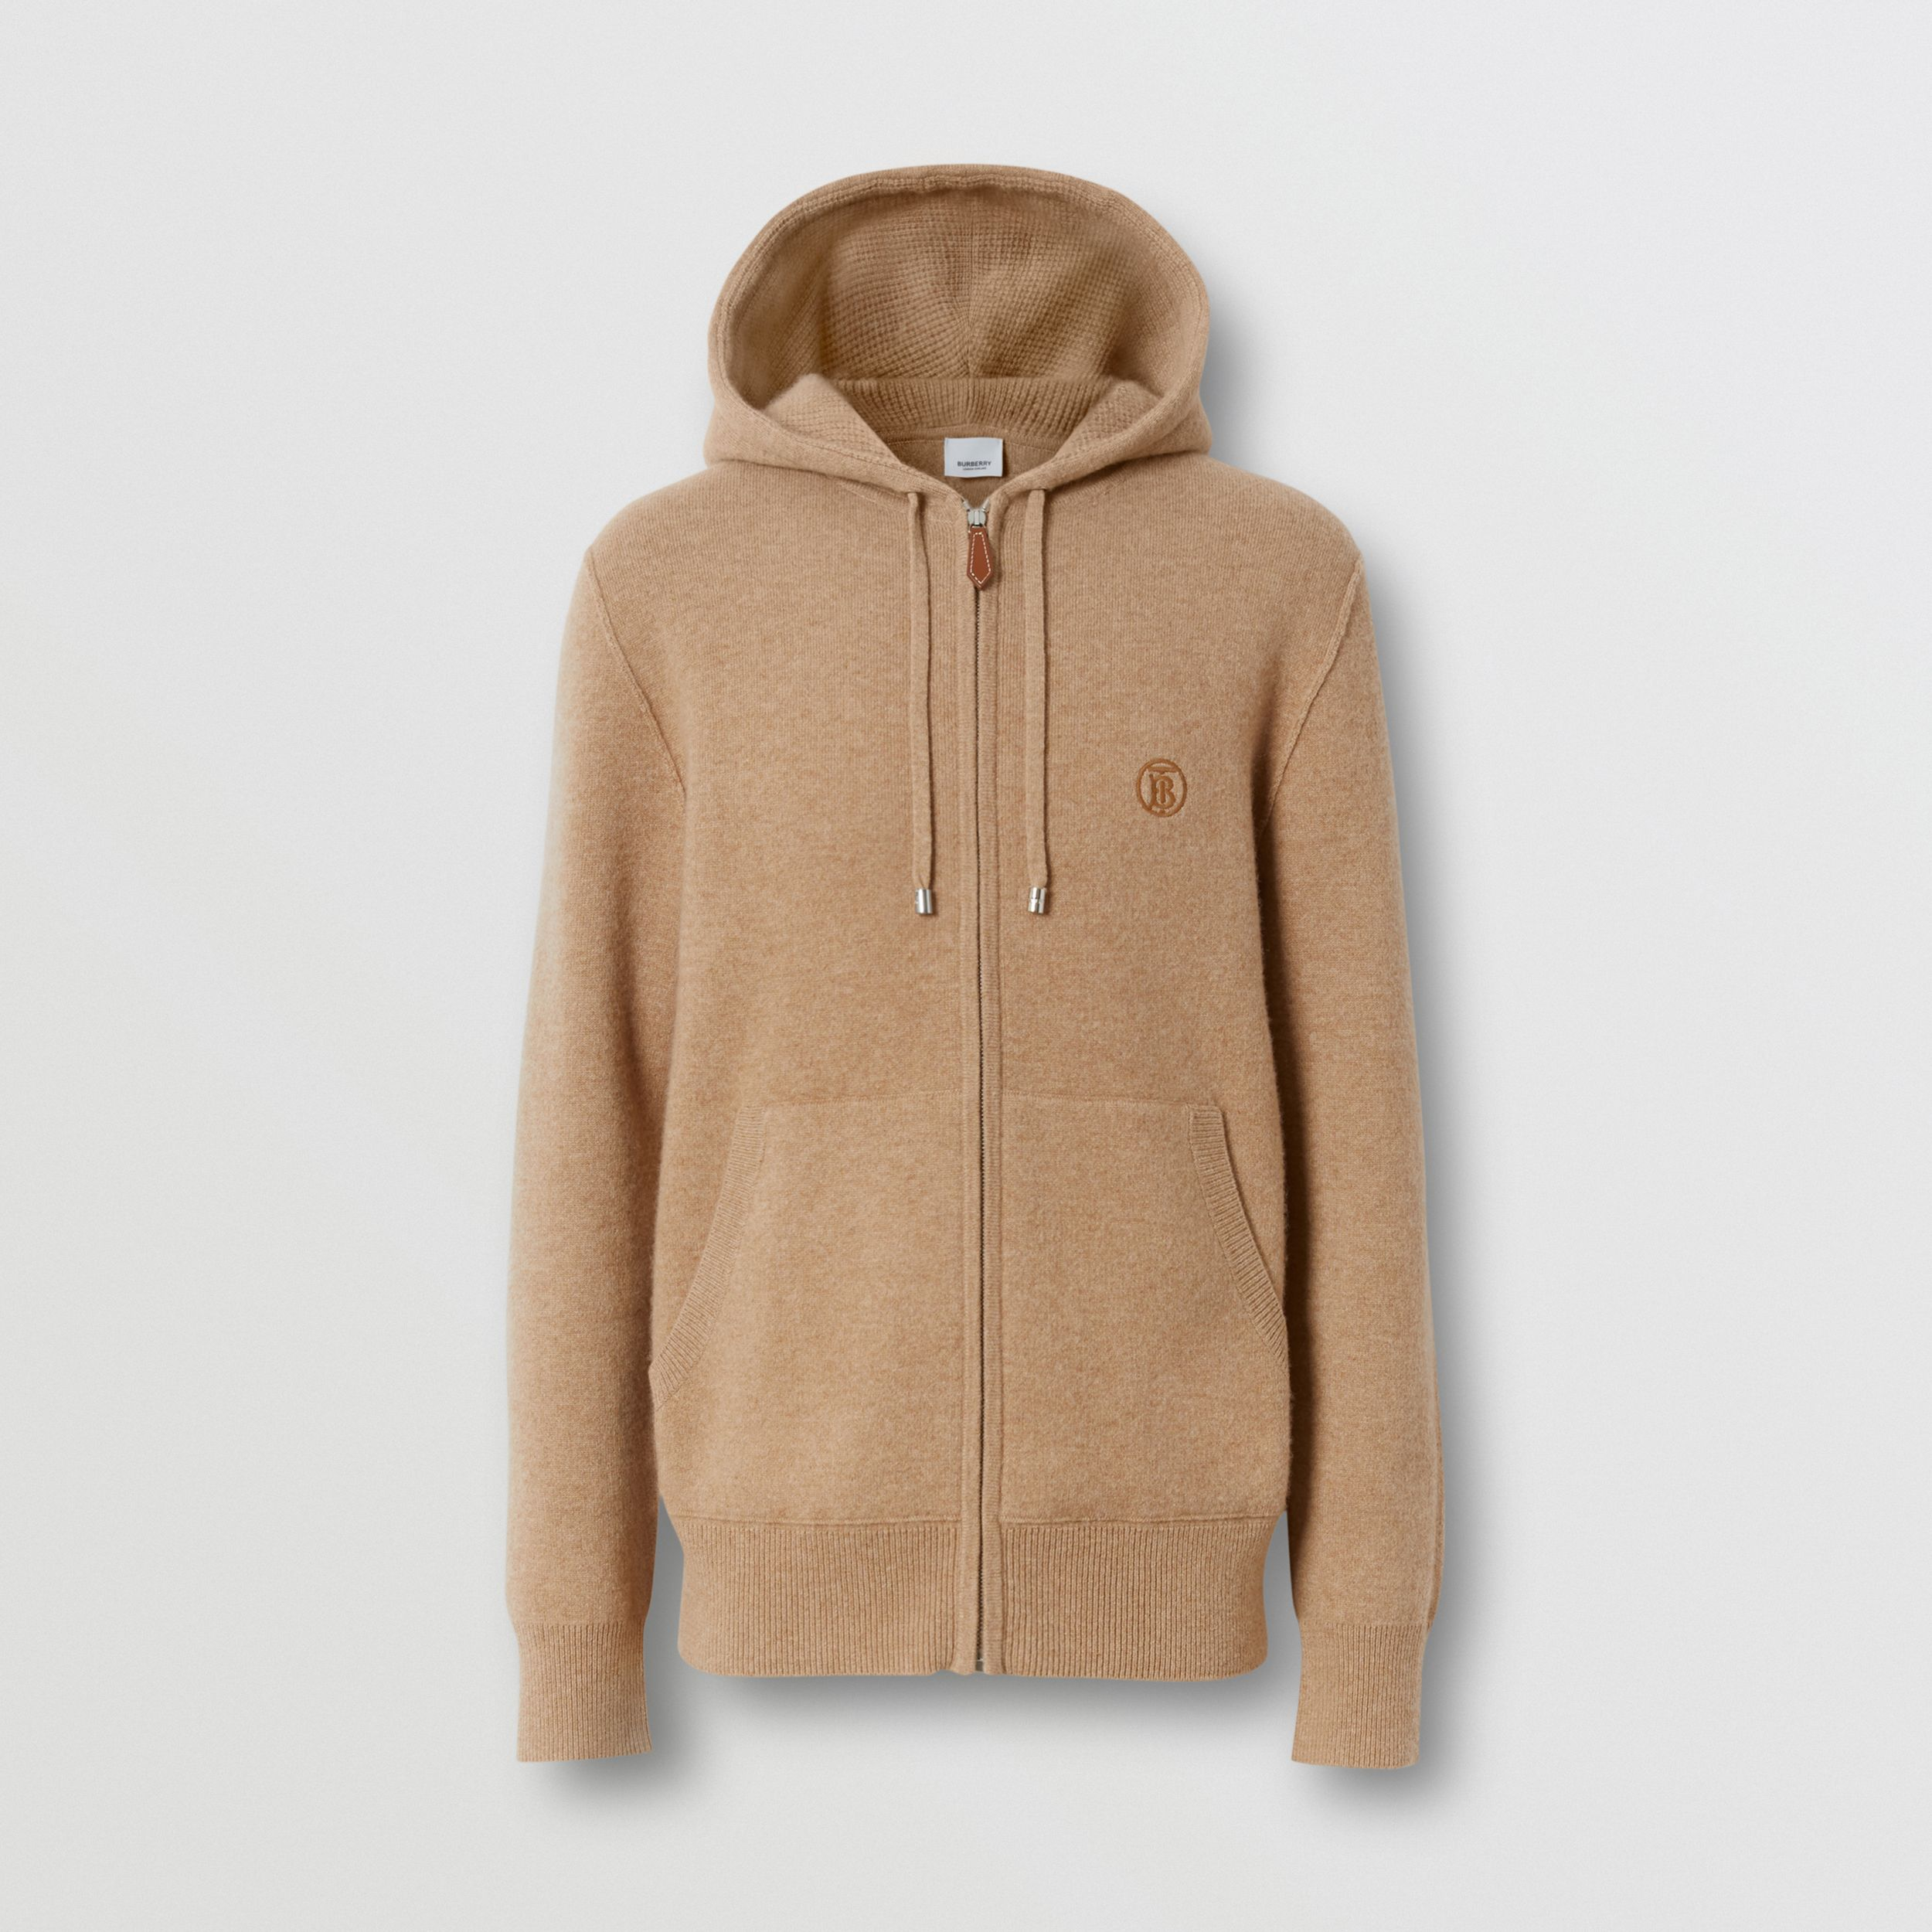 Monogram Motif Cashmere Blend Hooded Top in Pale Coffee - Men | Burberry Hong Kong S.A.R. - 4